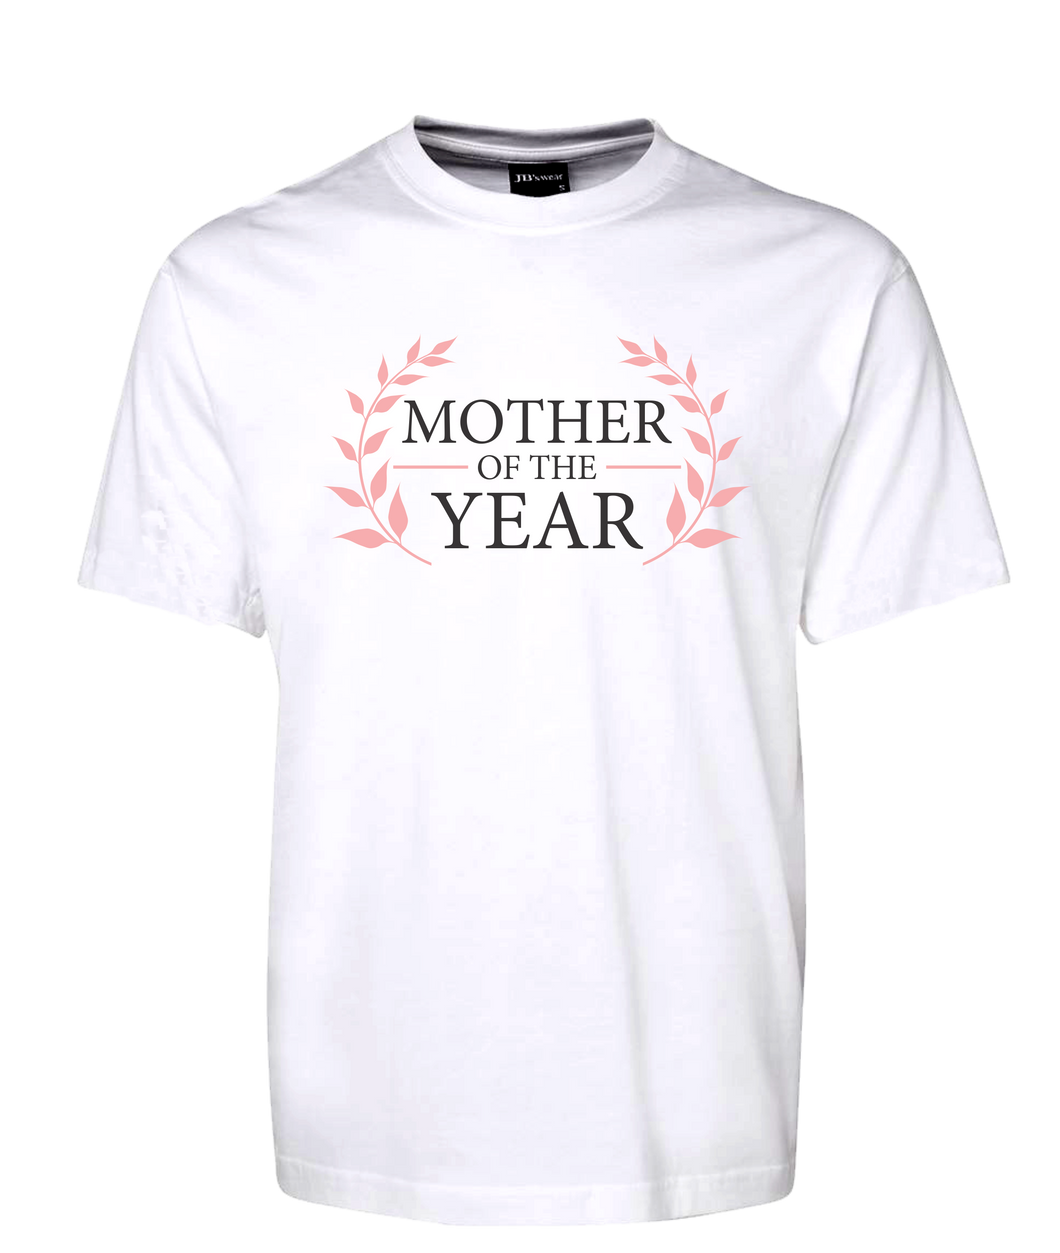 Mother Of The Year Tee T-Shirt For Mother's Day Birthday Christmas